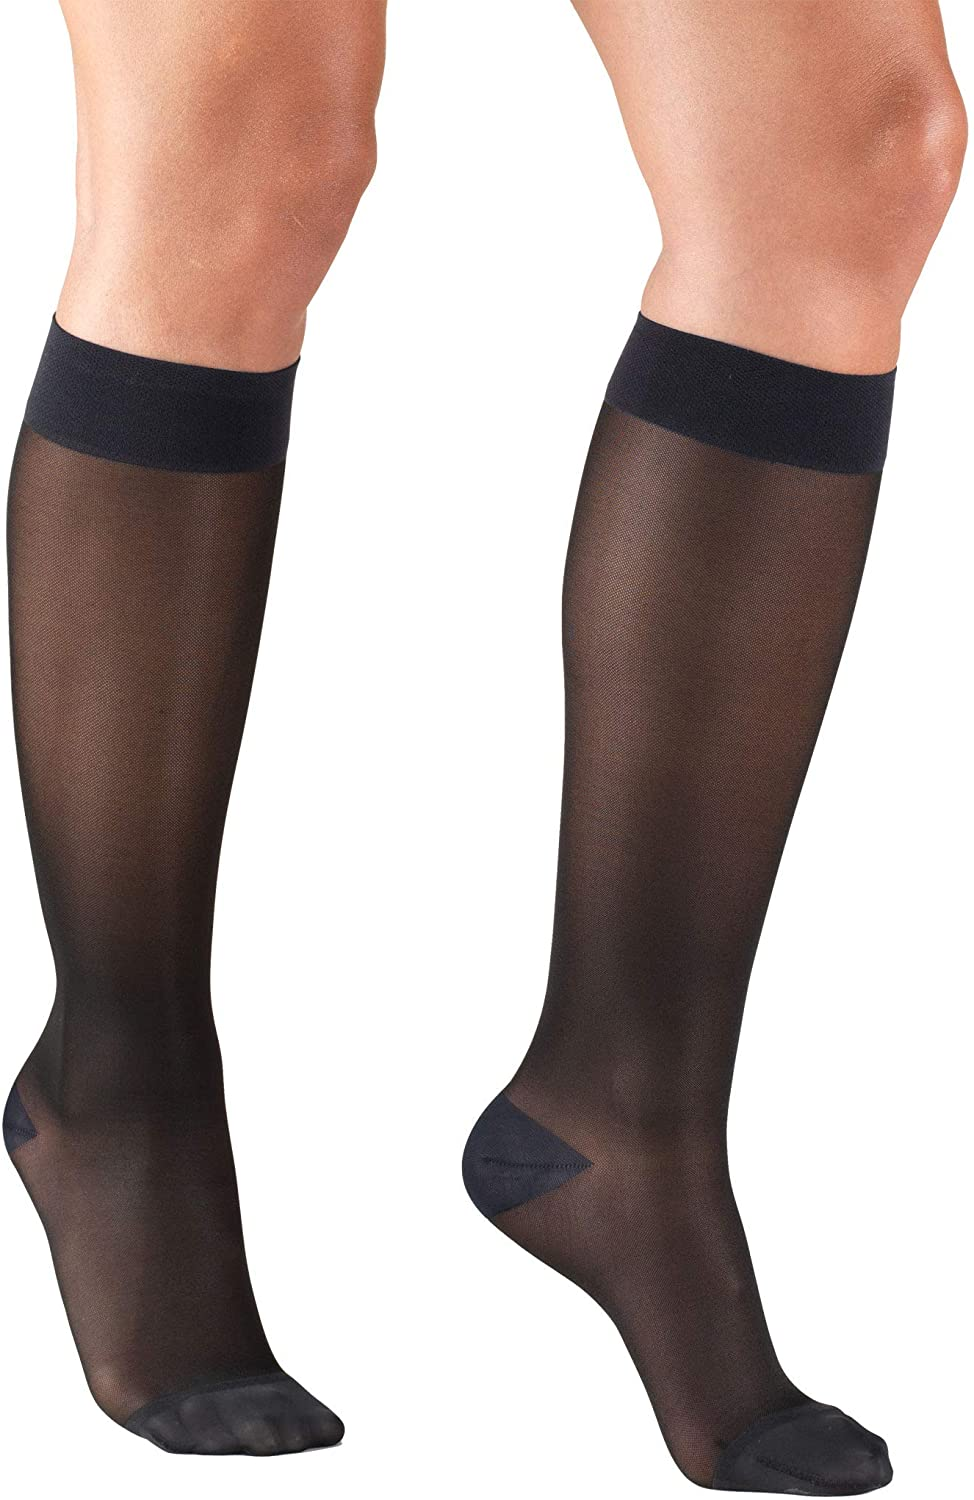 Truform Sheer Compression Stockings, 15-20 mmHg, Women's Knee high Length, 20 Denier, Charcoal, Large